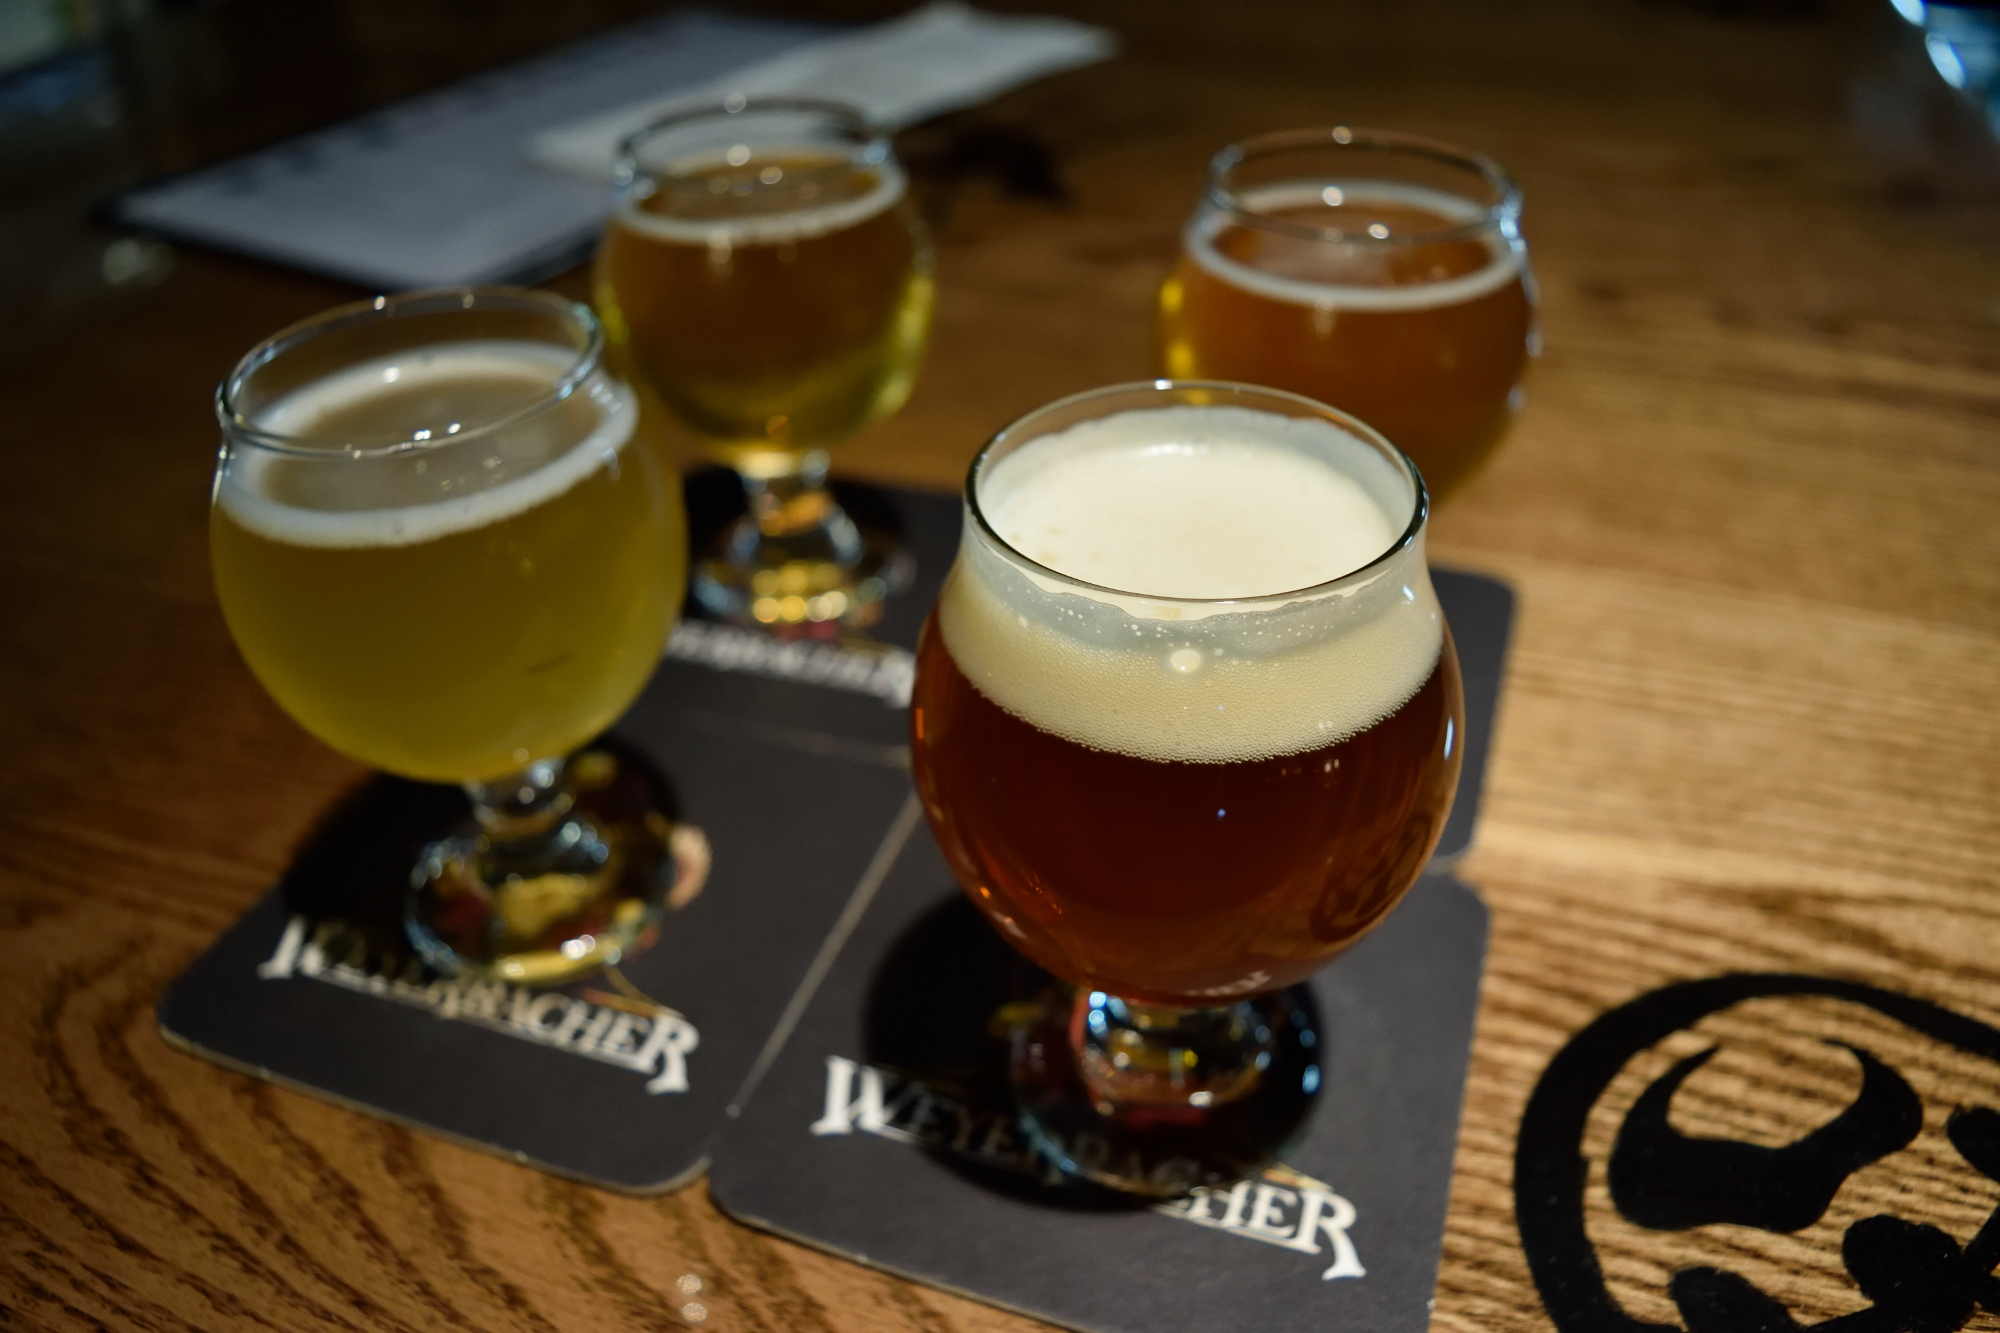 So a pilsner, a Hefeweizen, and two IPA's walk into a bar...